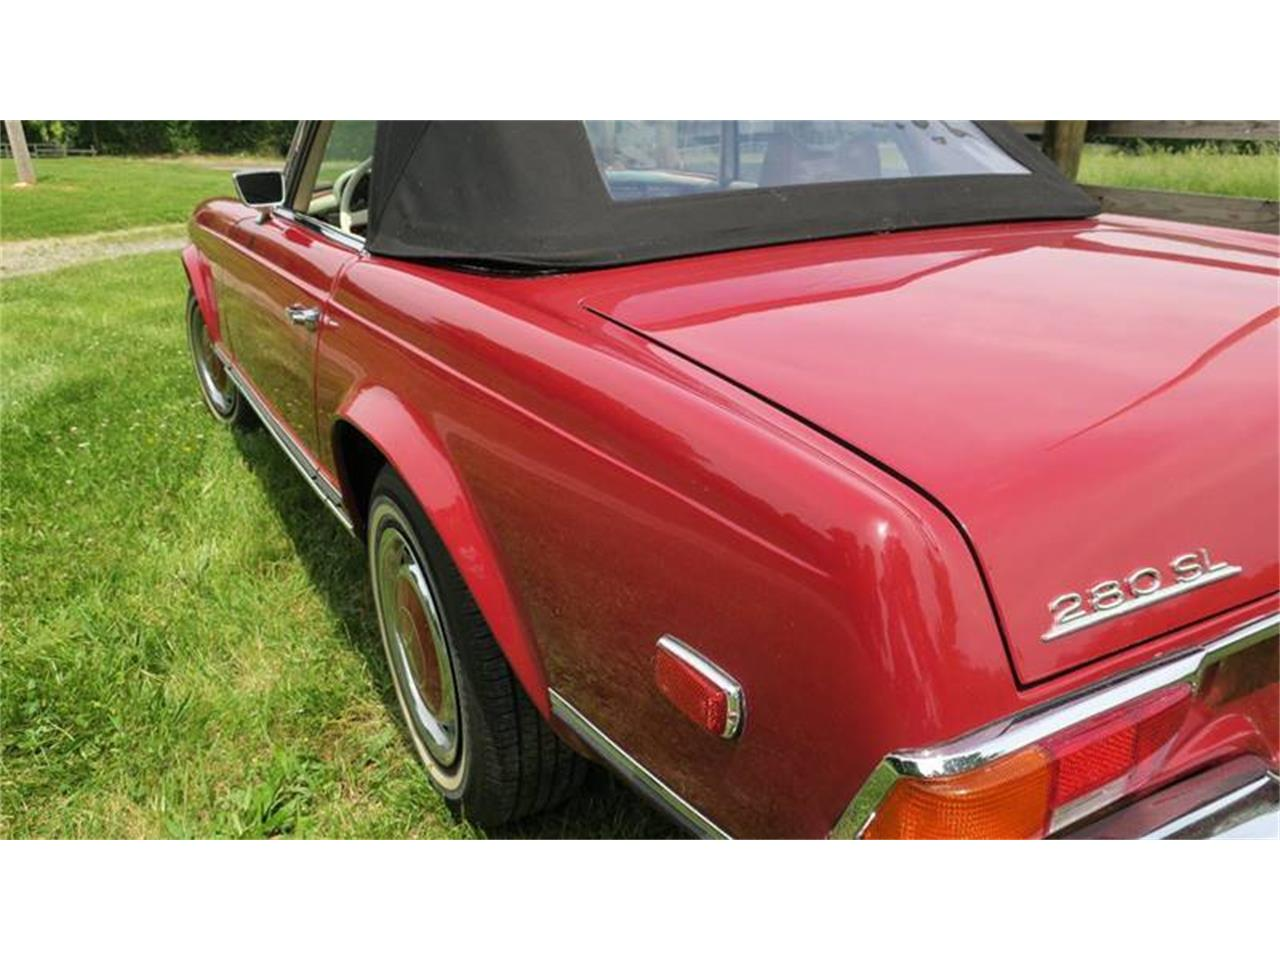 Large Picture of Classic '69 SL-Class located in Clarksburg Maryland - $55,900.00 - Q614